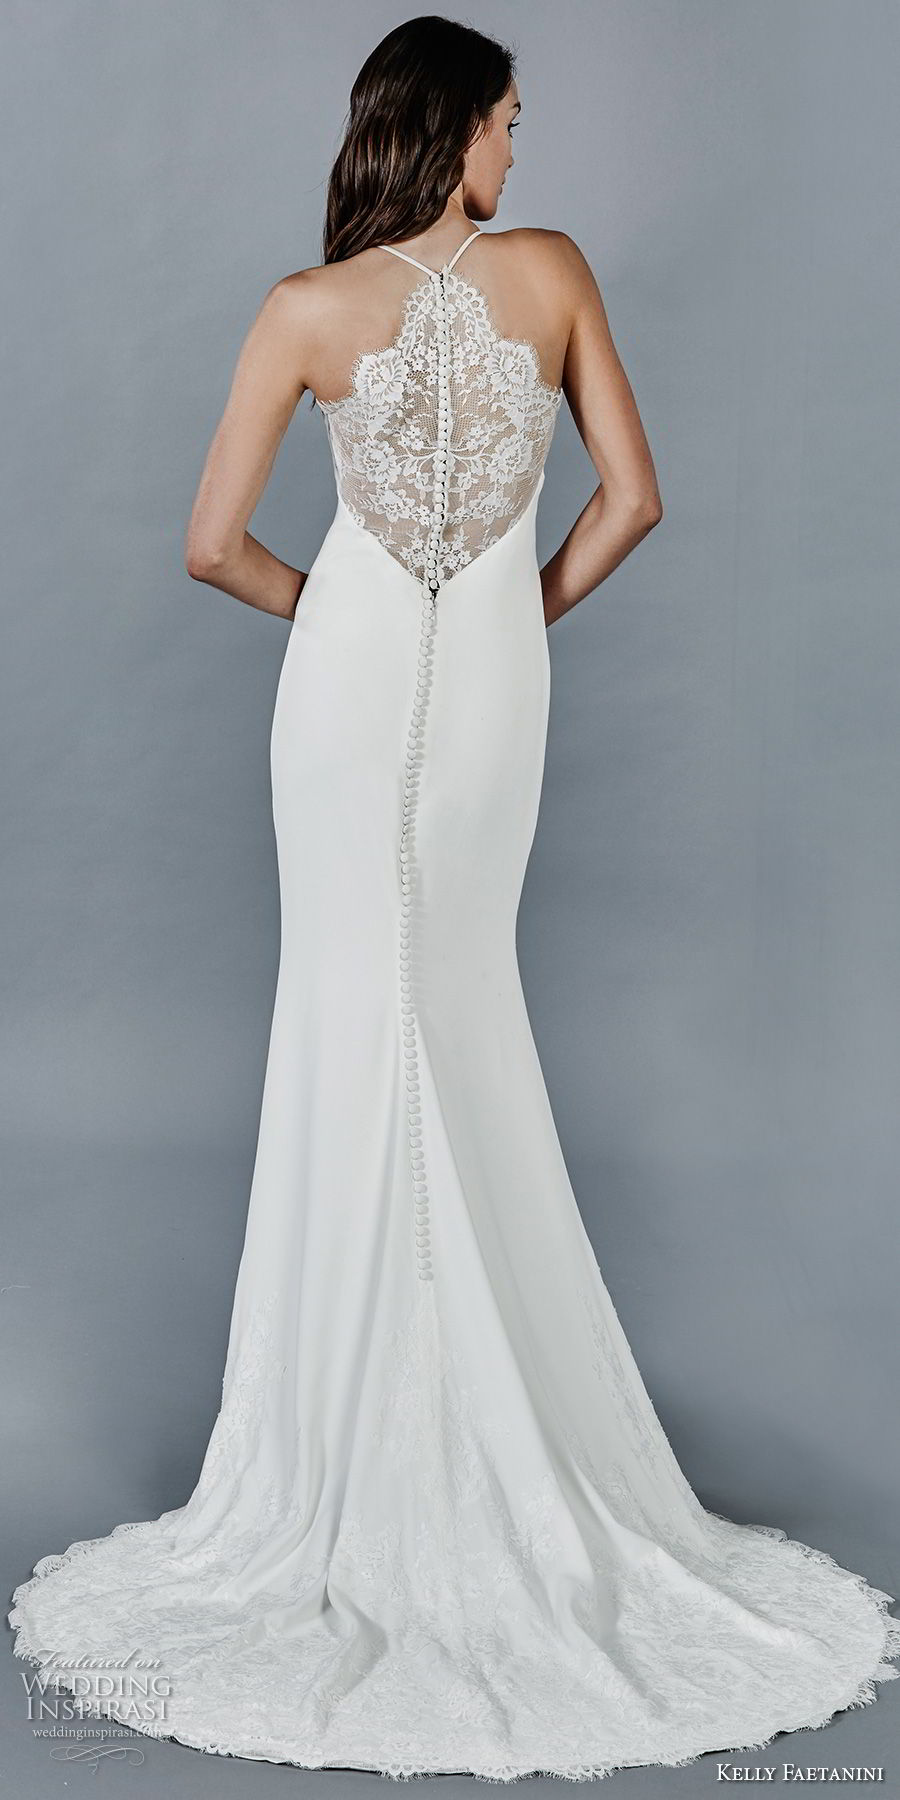 kelly faetanini fall 2018 bridal sleeveless halter jewel neck simple clean elegant sheath wedding dress lace back sweep train (13) bv